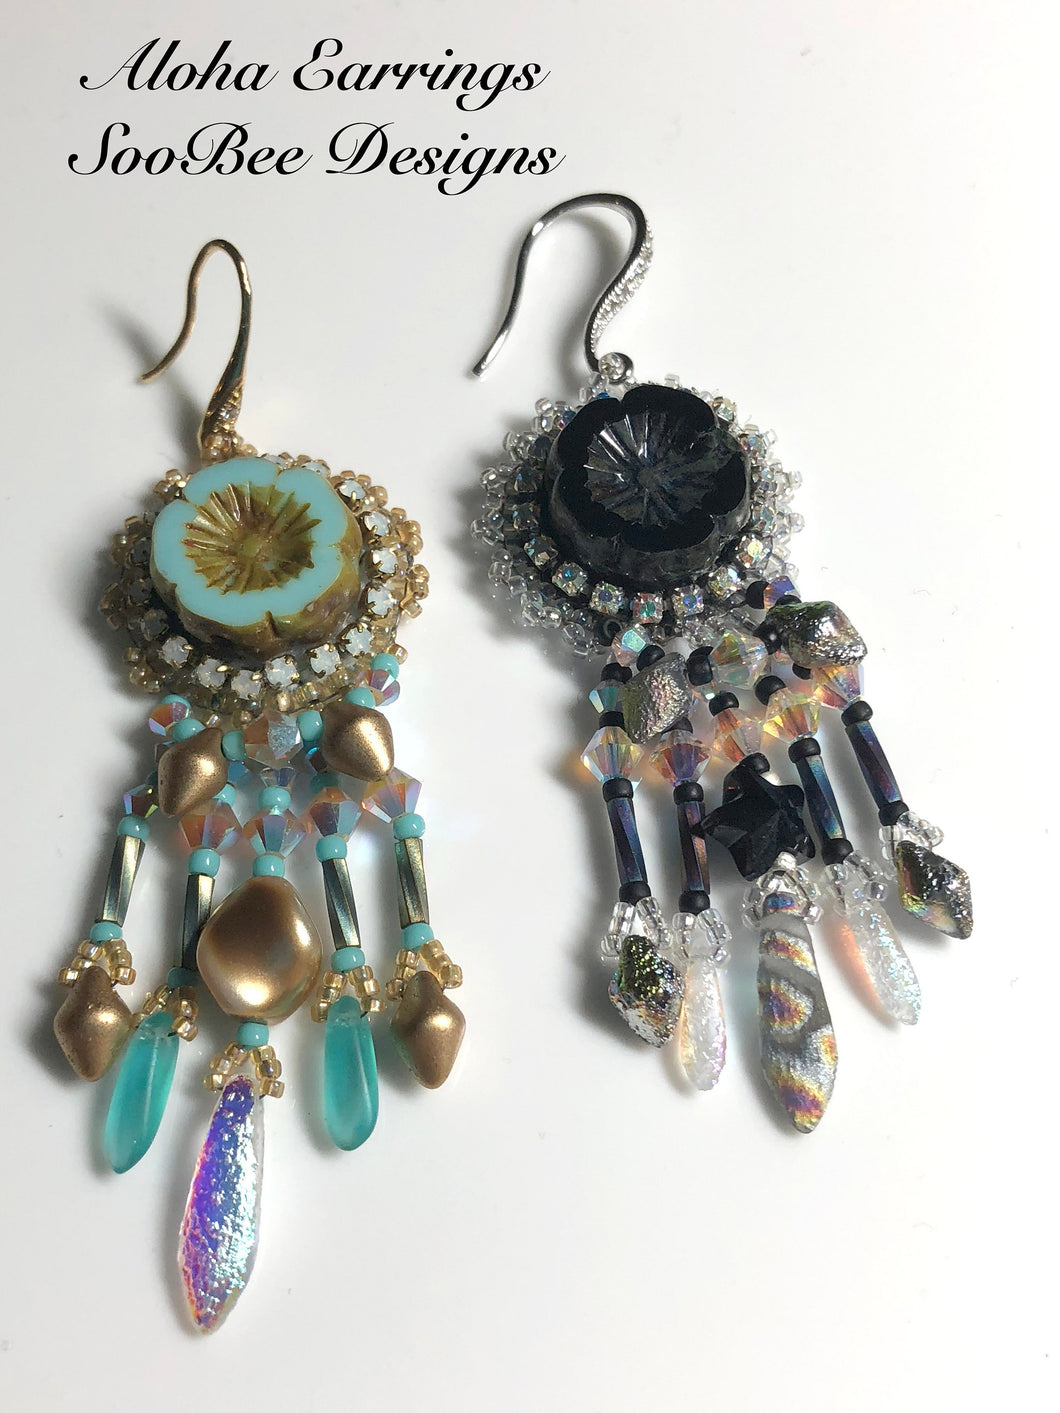 TUTORIAL ONLY - Aloha Bead Embroidery Earring